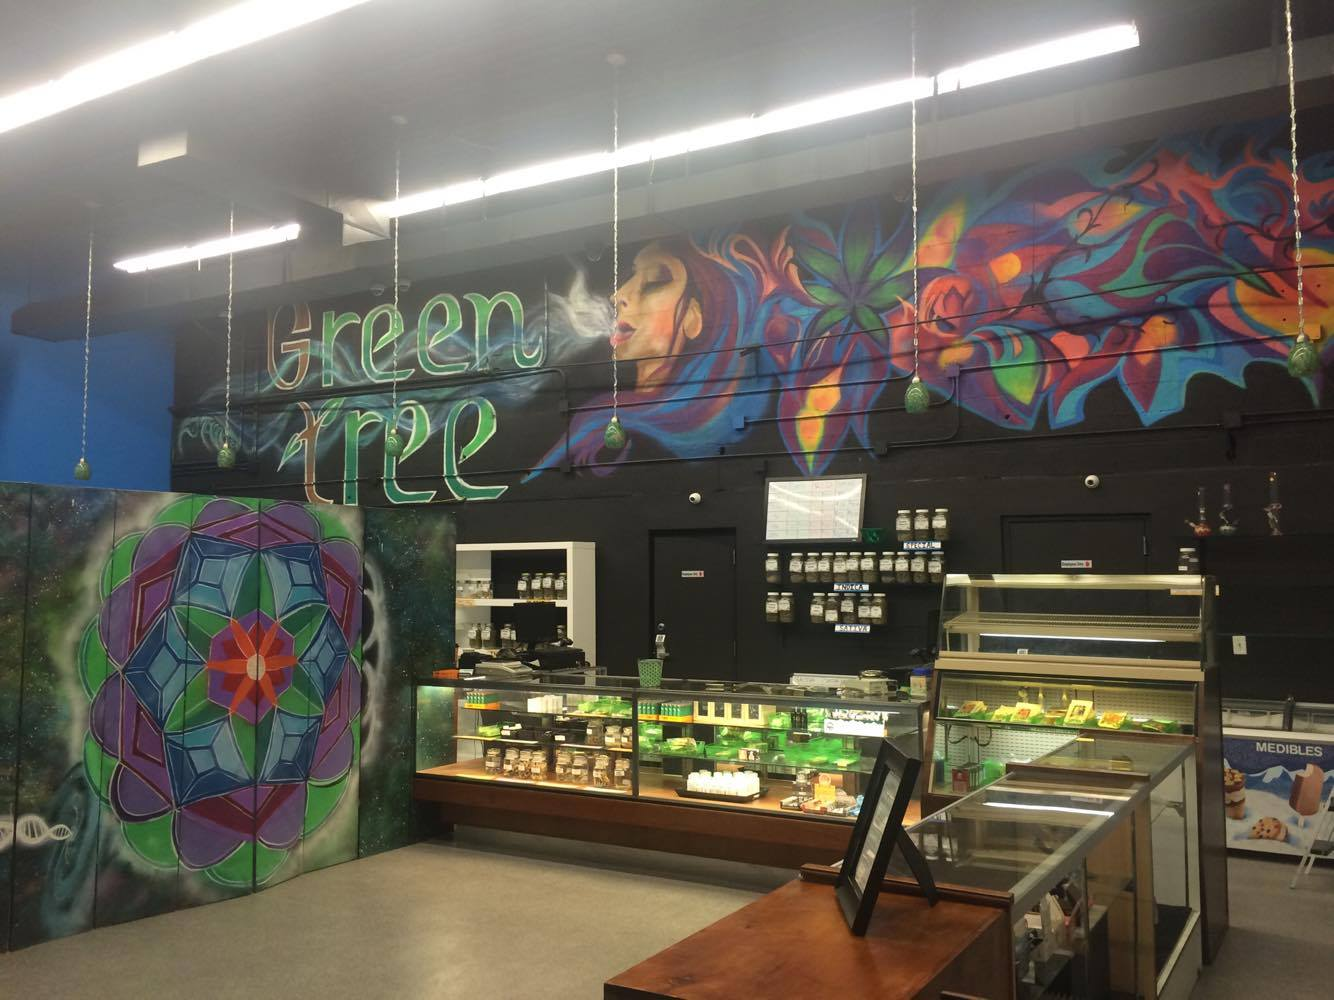 Get to know Colorado's local cannabis industry with an inside look at local dispensary, Green Tree Medicinals.